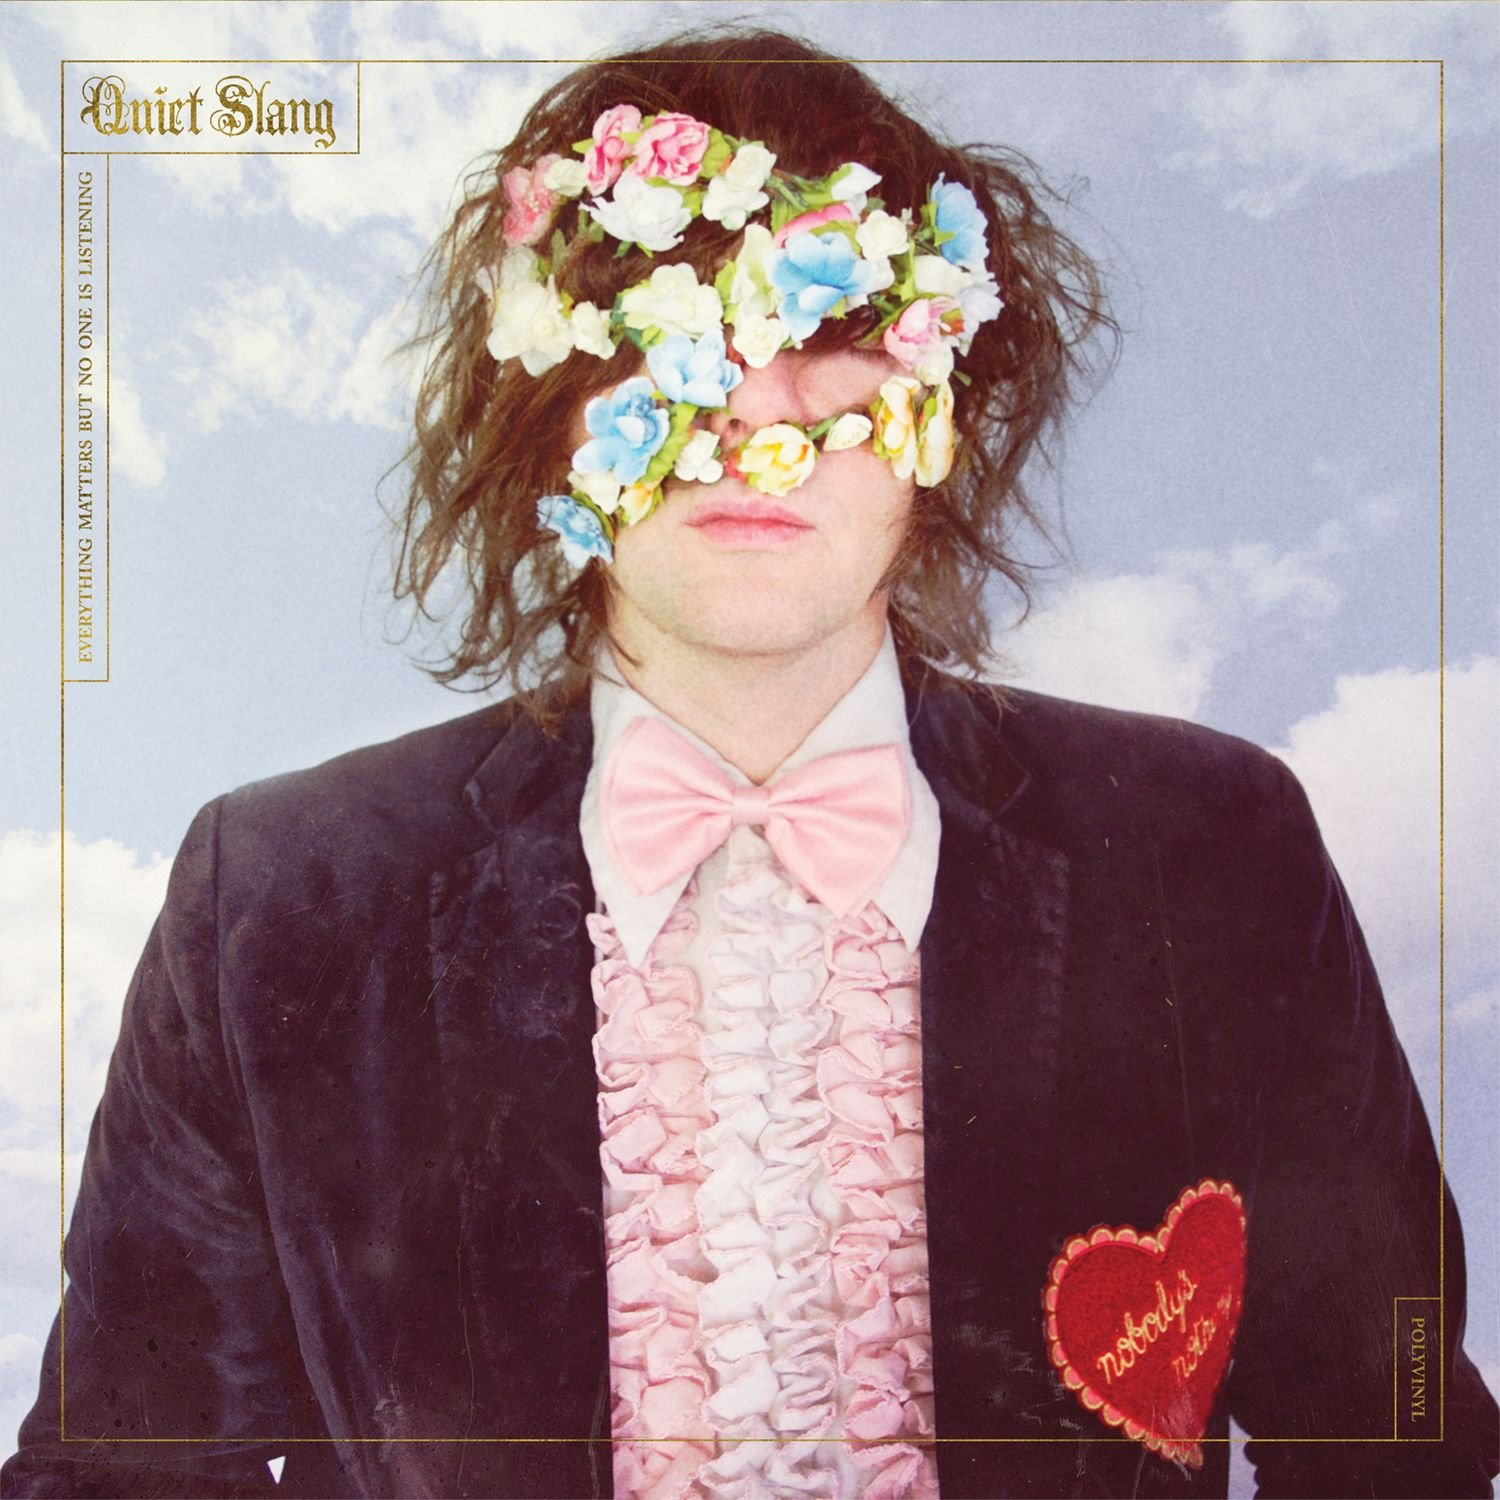 CD : Beach Slang - Everything Matters But No One Is Listening [quiet Slang] (CD)